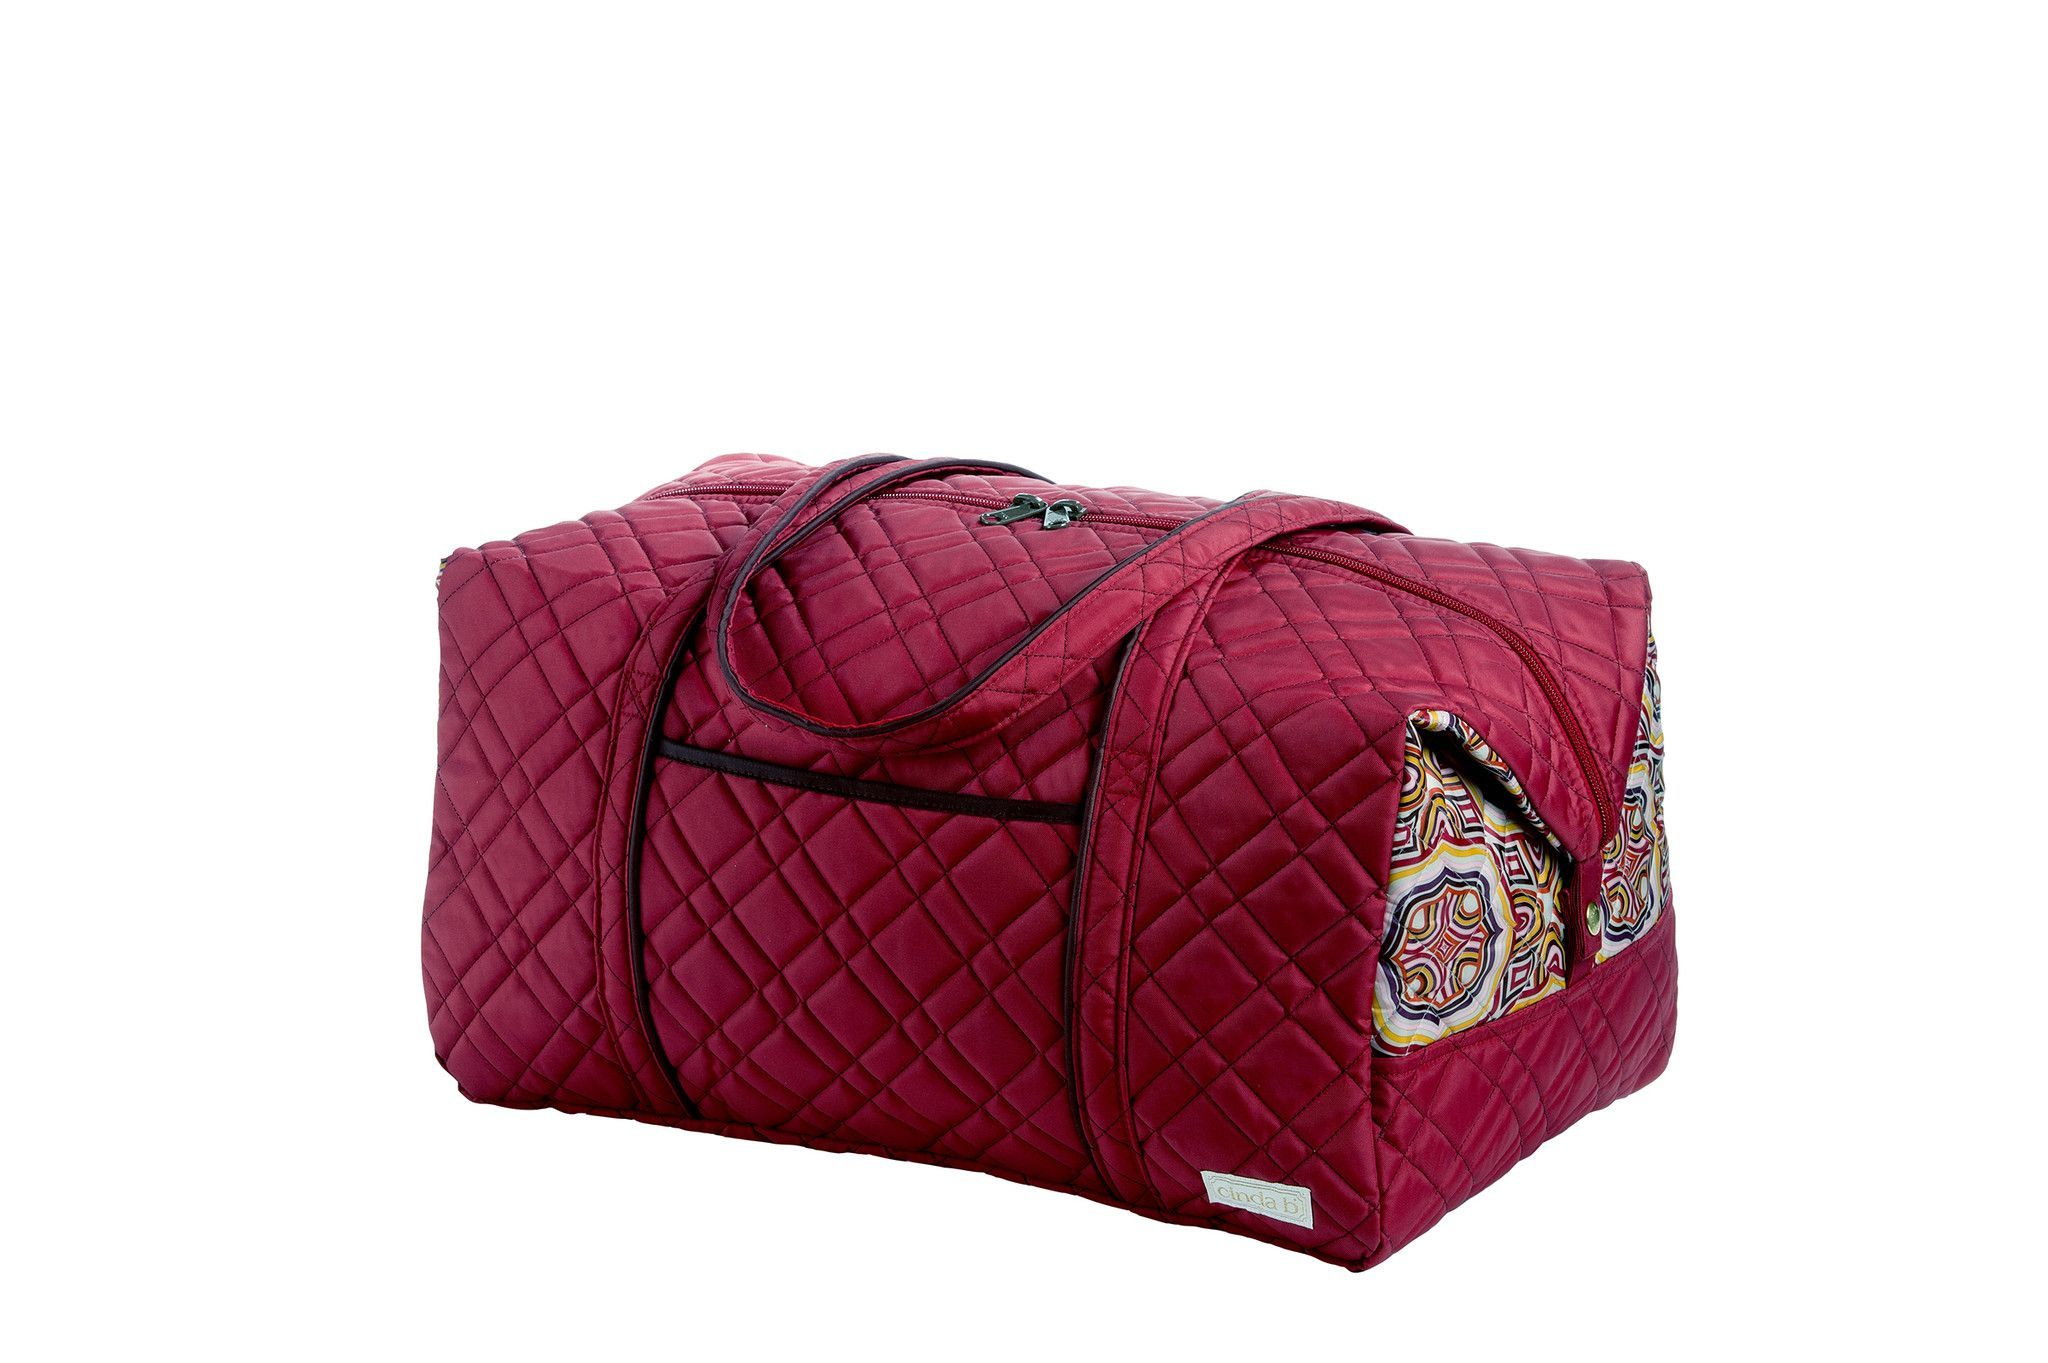 Vacationer Bags, One bag, Purses